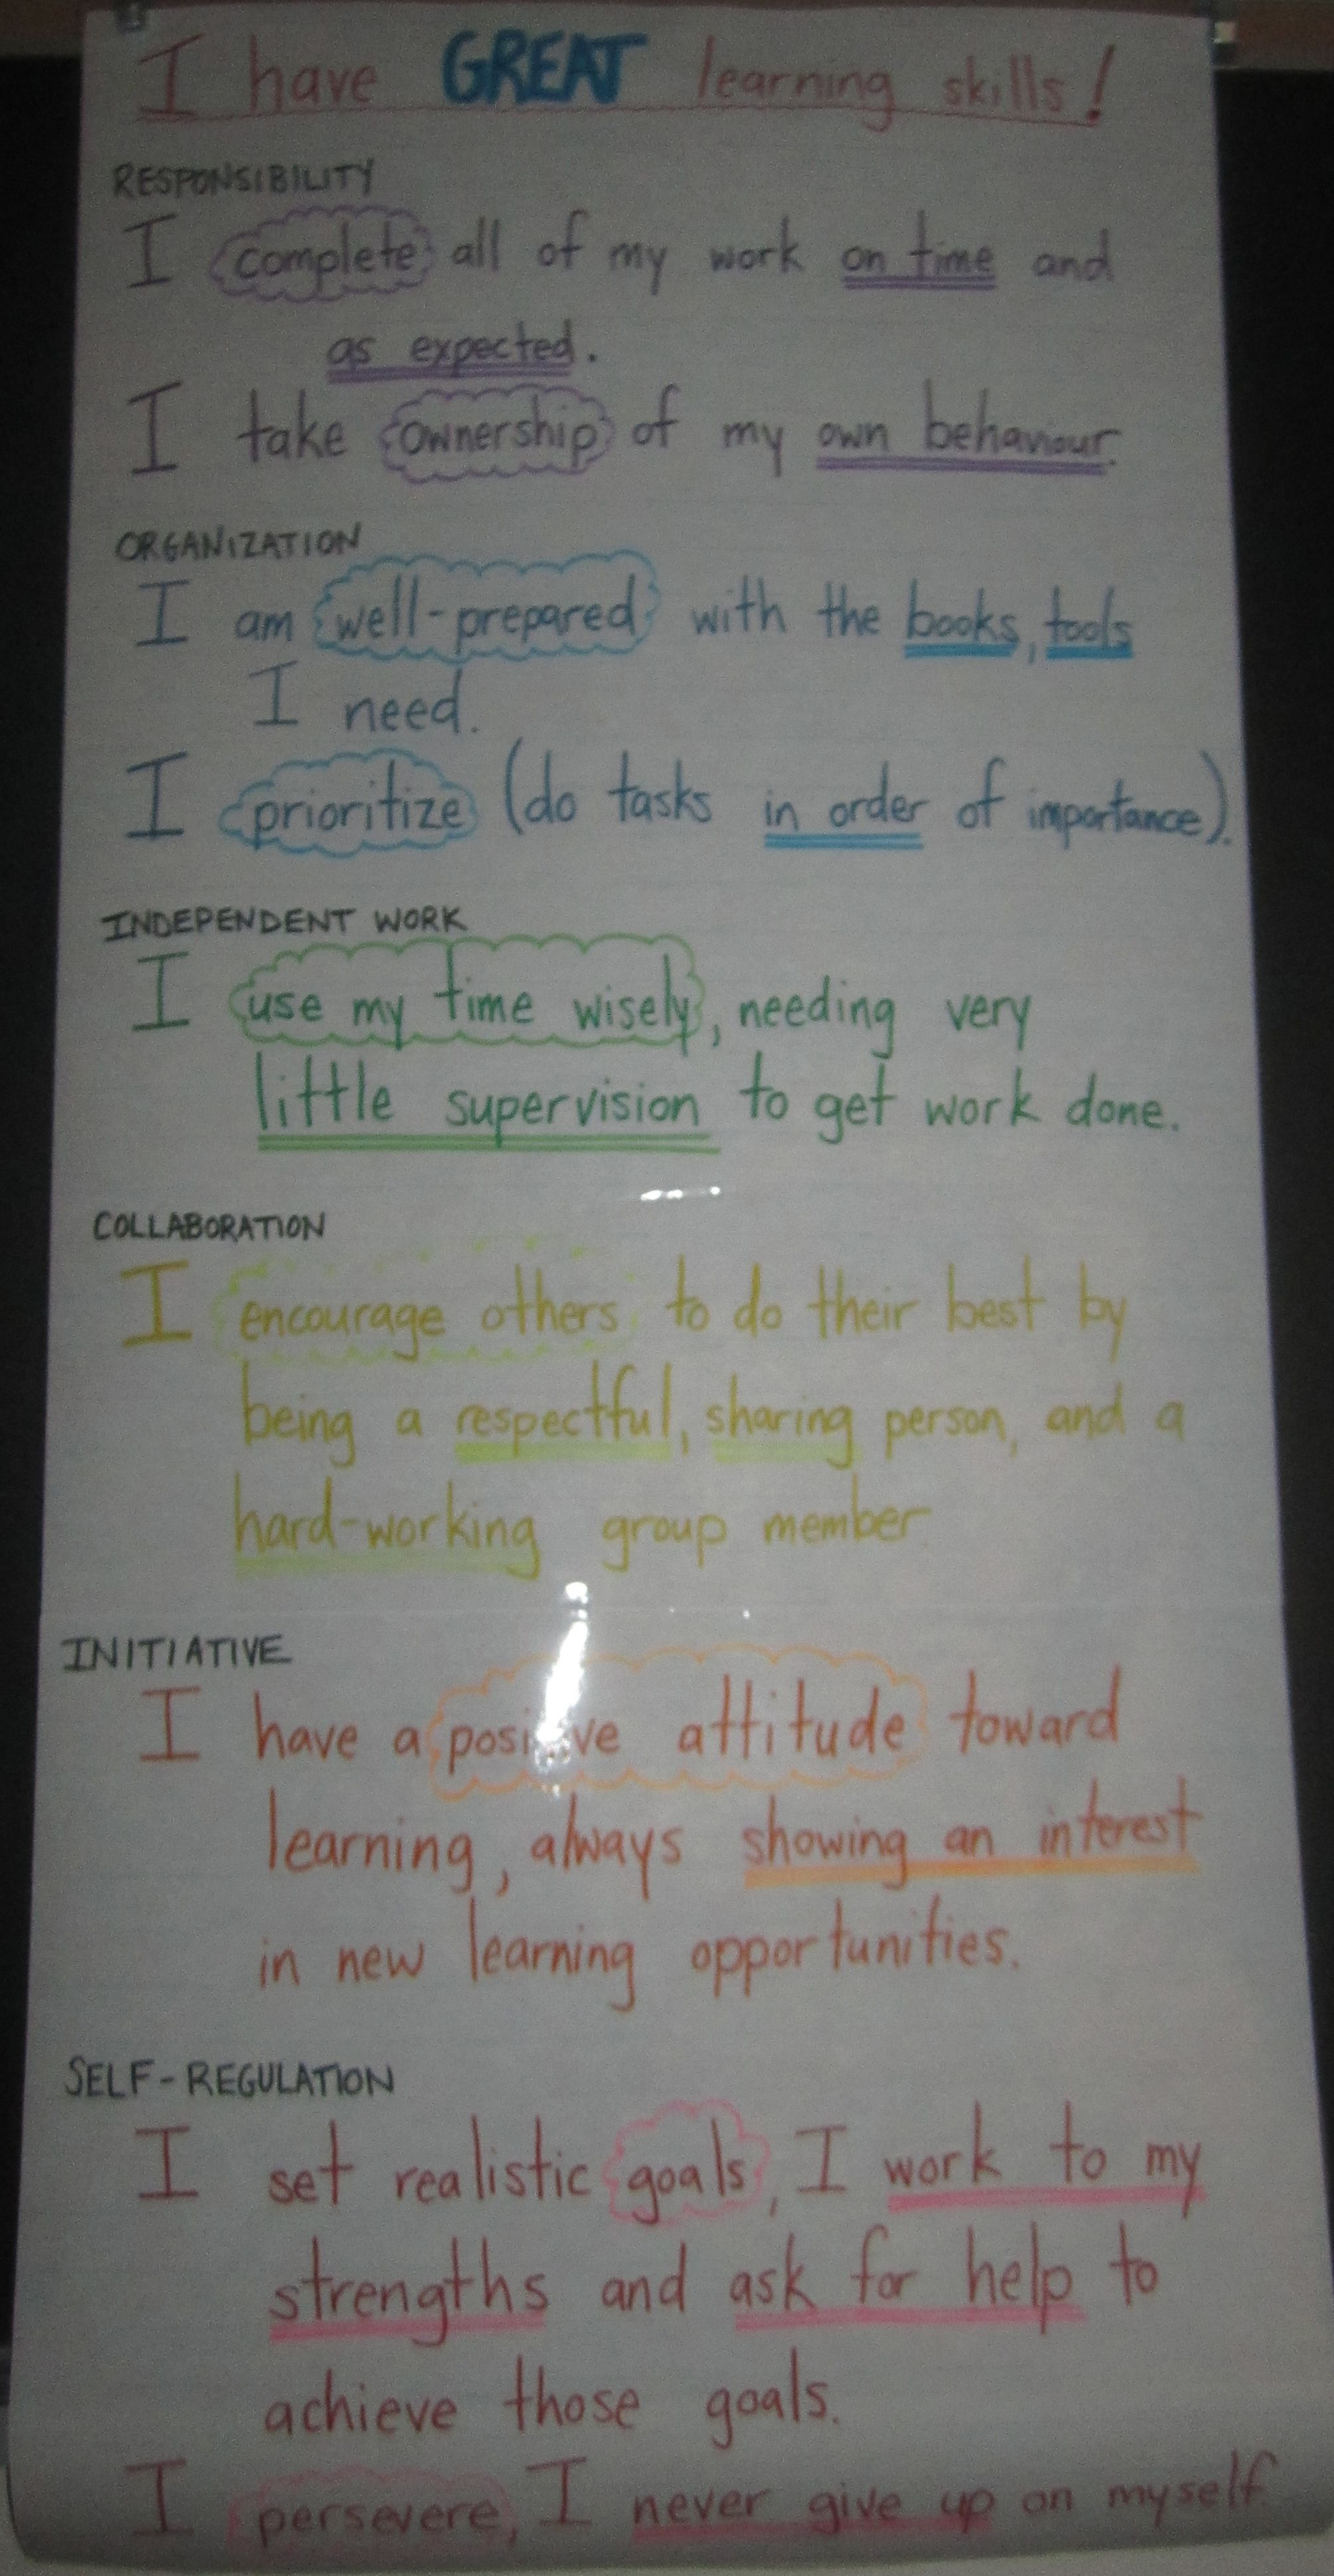 learning skills anchor chart  uses 6 ontario ministry of education learning skills in kid